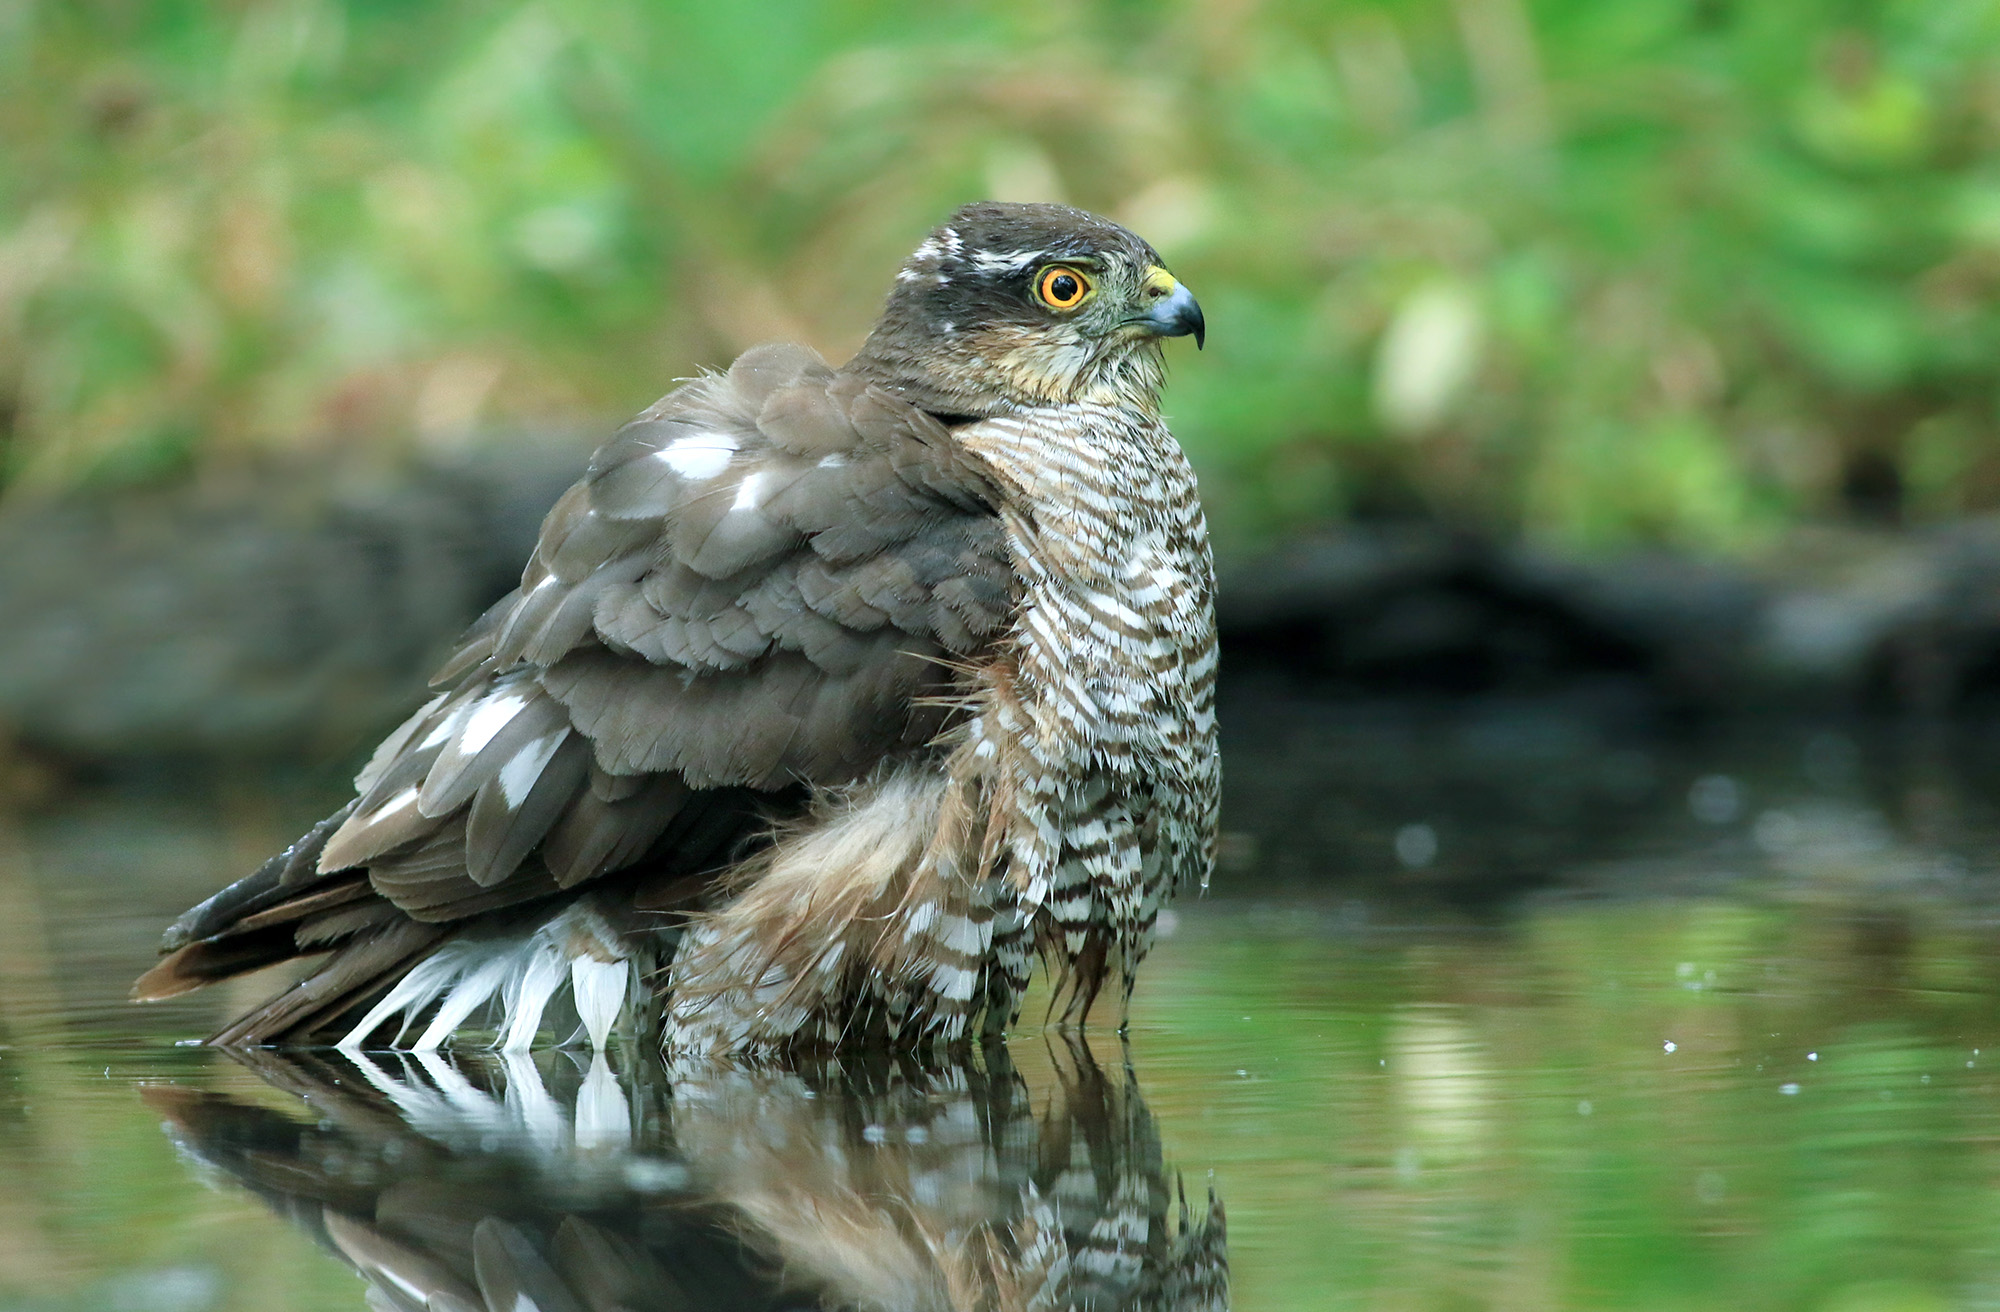 sparrowhawk from wet feathers...